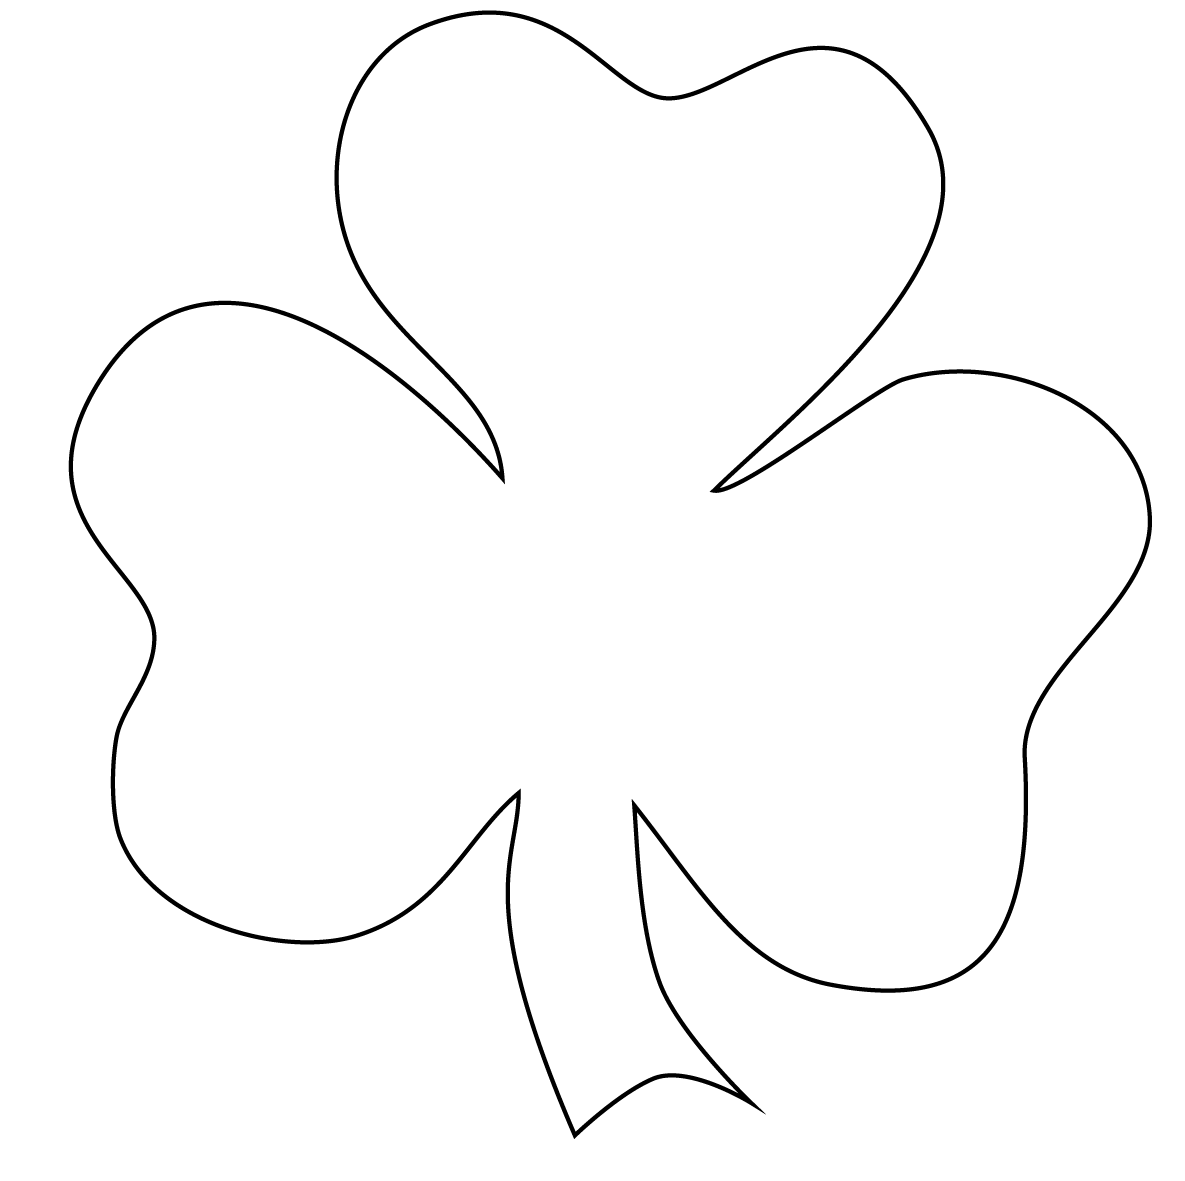 vector royalty free download Free clip art panda. Shamrock clipart black and white